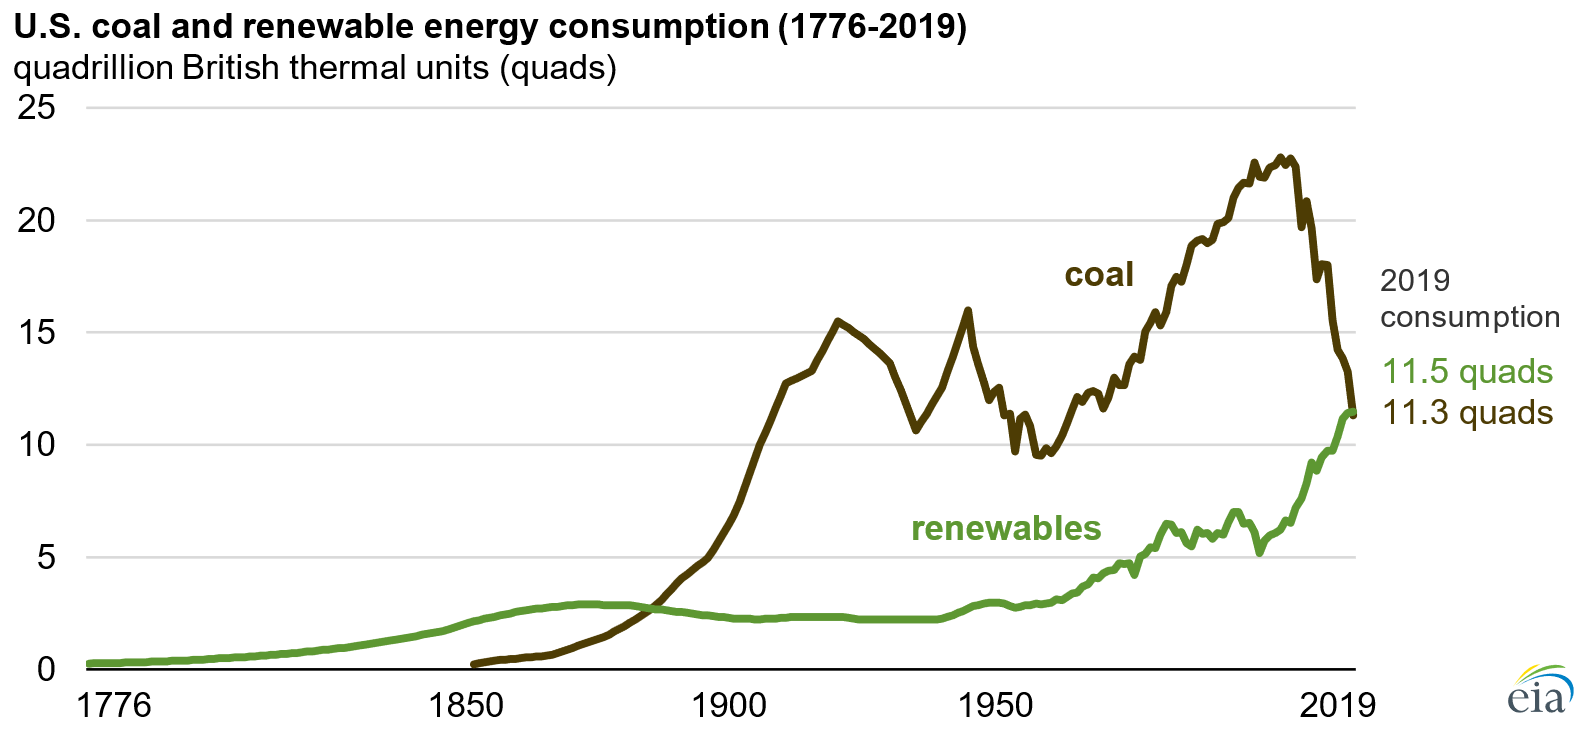 line graph of u.s. coal and renewable energy consumption (1776-2019)